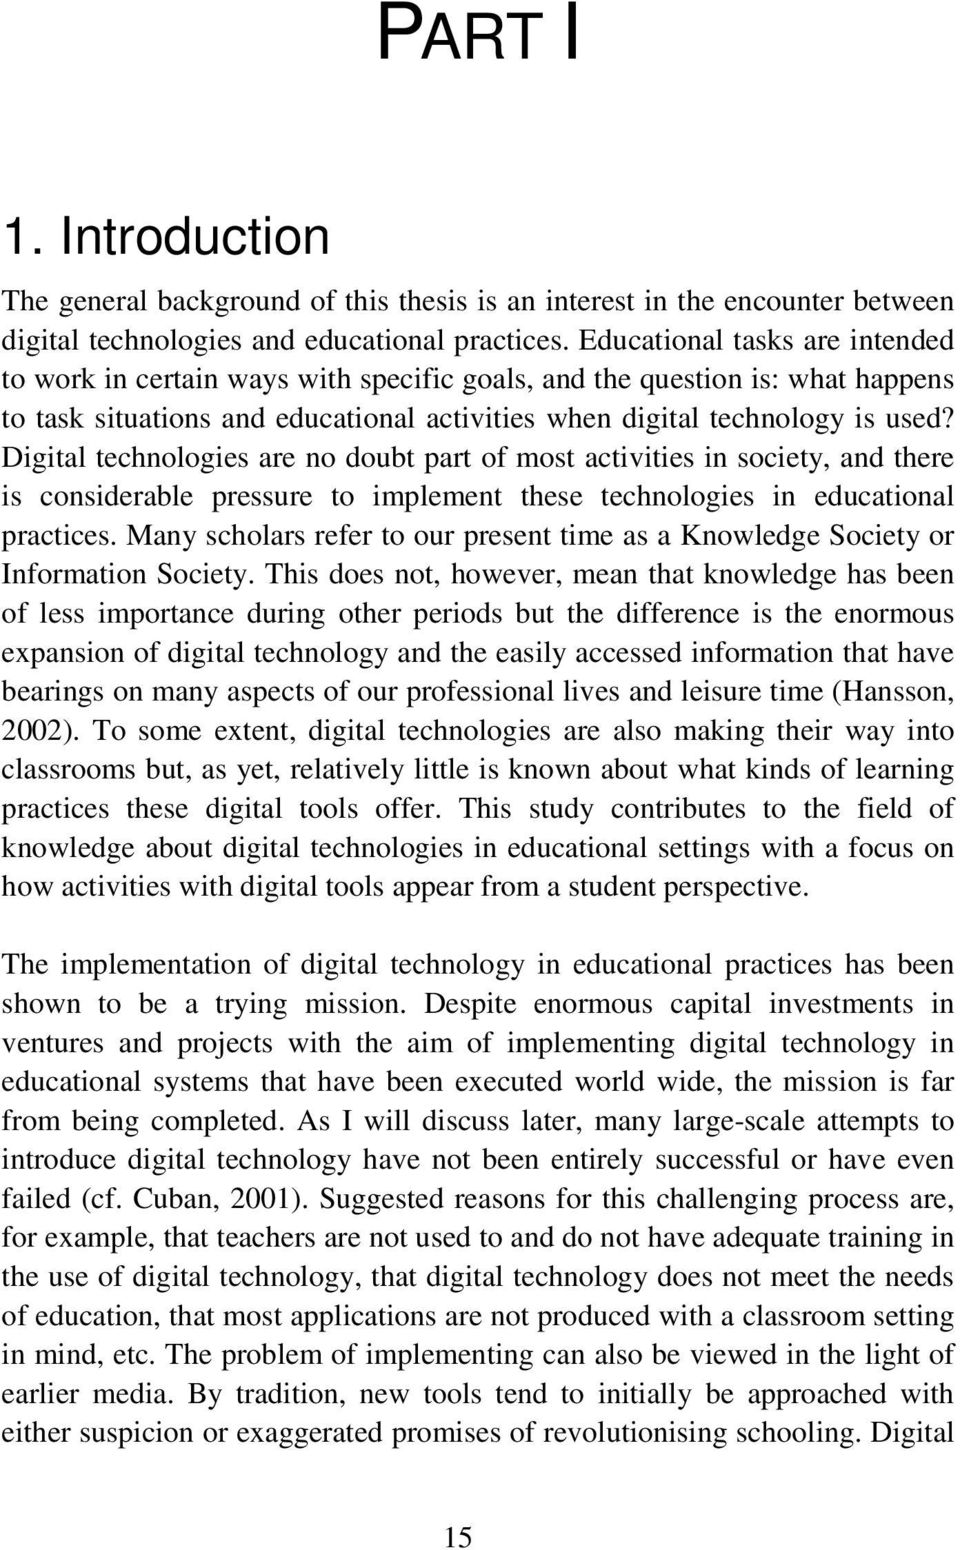 Digital technologies are no doubt part of most activities in society, and there is considerable pressure to implement these technologies in educational practices.